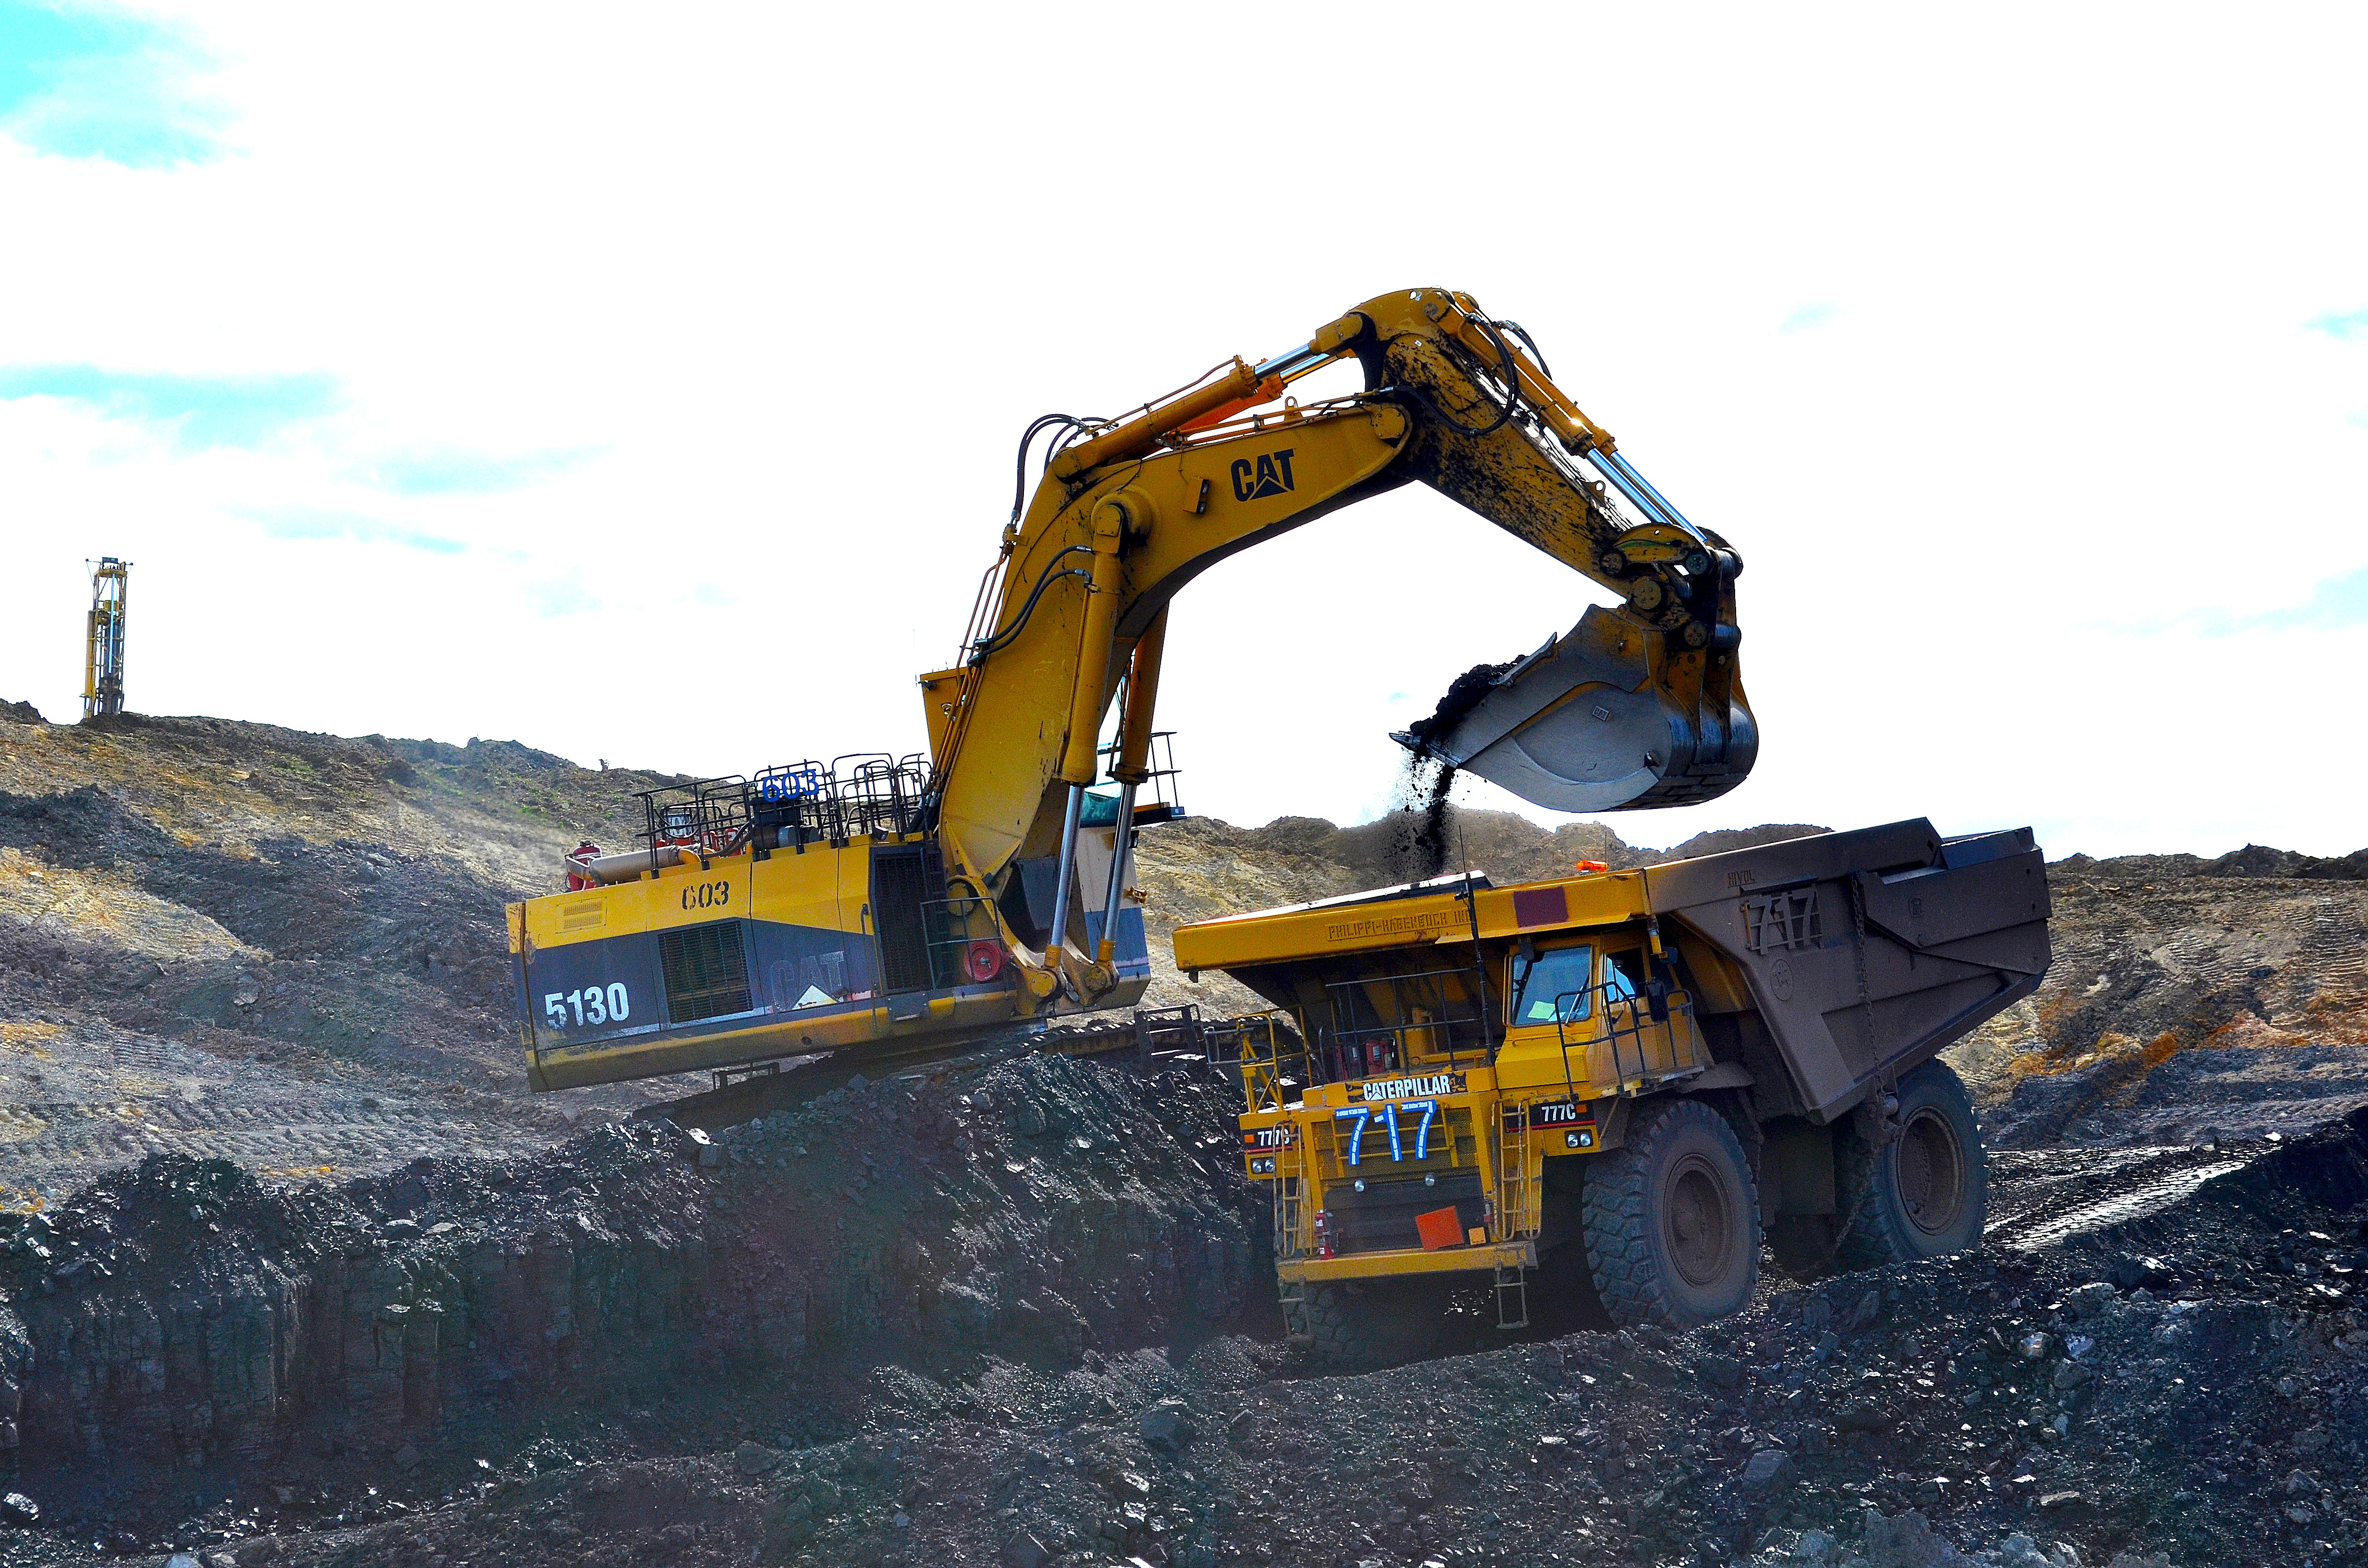 <p>A backhoe dumps coal into a haul truck at Trapper Mine near Craig, Colo. The coal is taken to a crusher behind Craig Station, a coal-fired power plant, to begin the process of turning it into energy.</p>